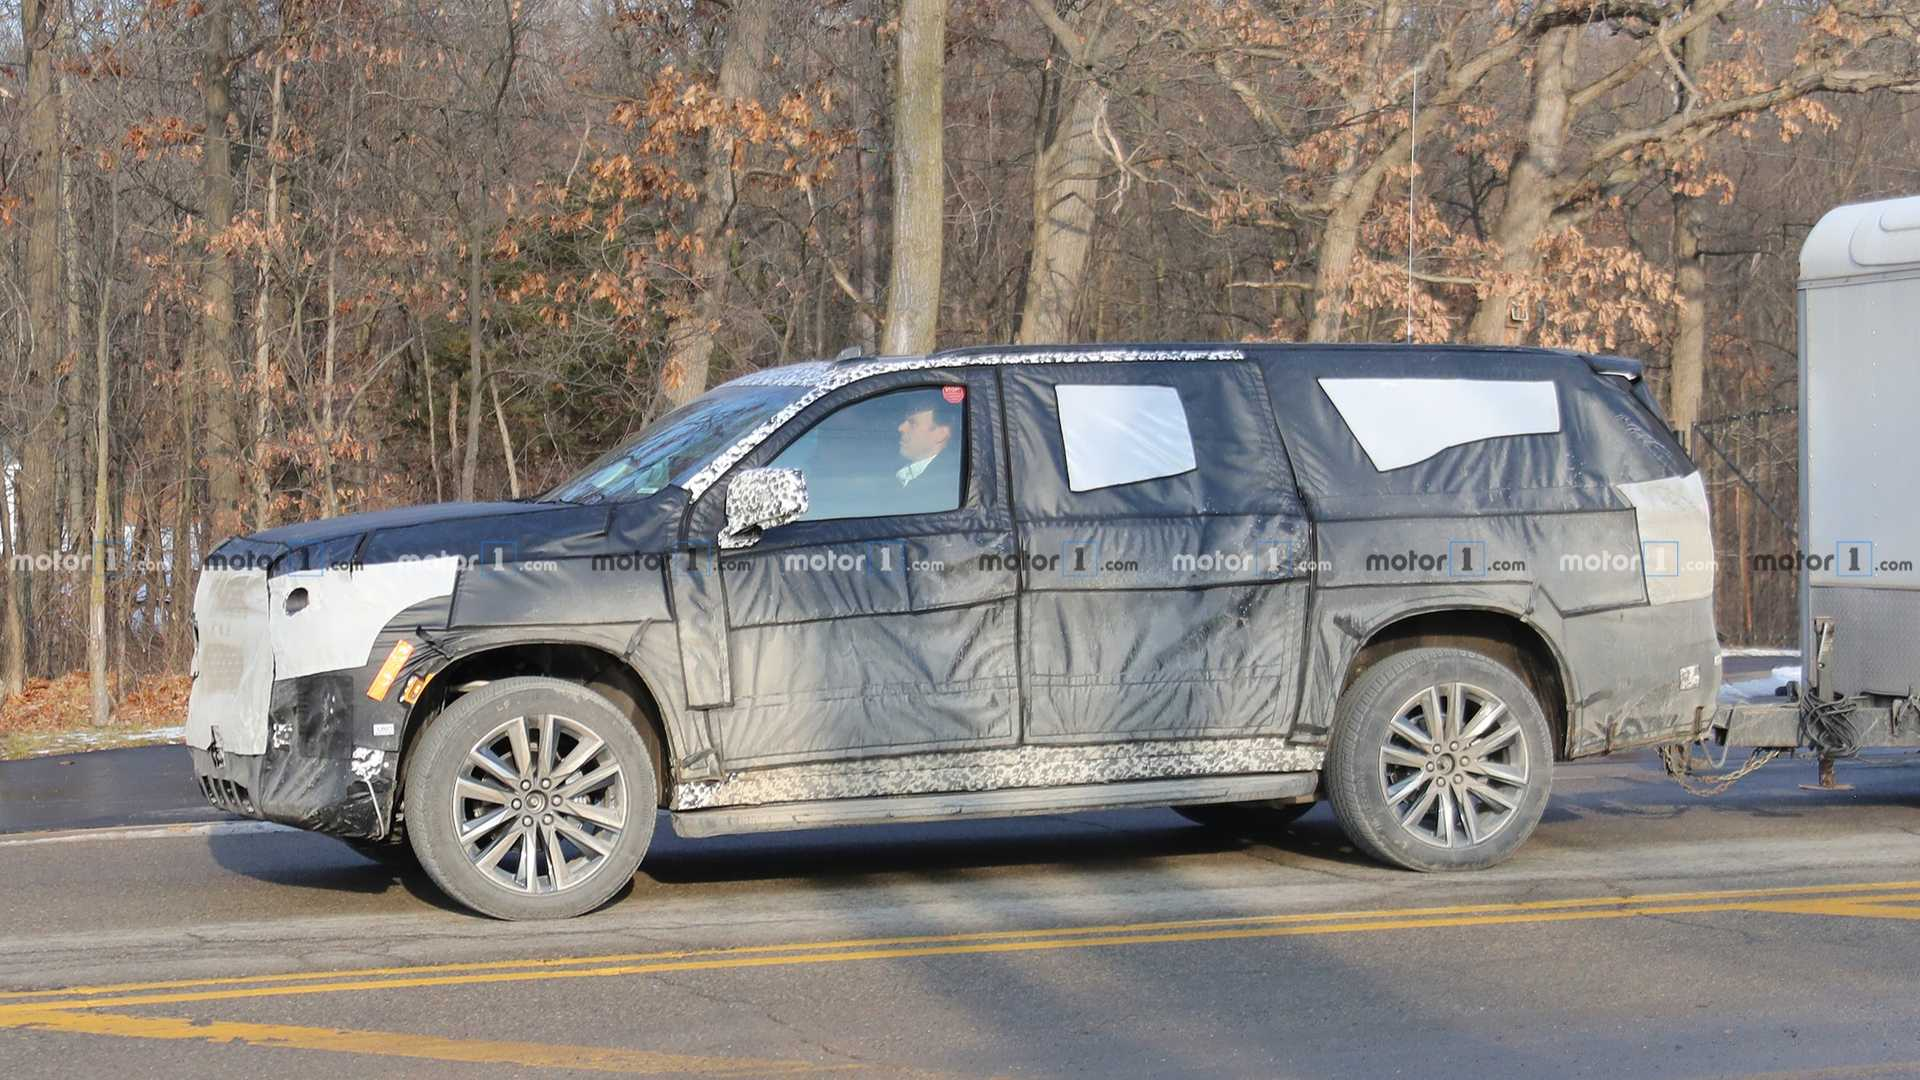 12 Best Review 2020 Cadillac Escalade Hybrid Spesification with 2020 Cadillac Escalade Hybrid